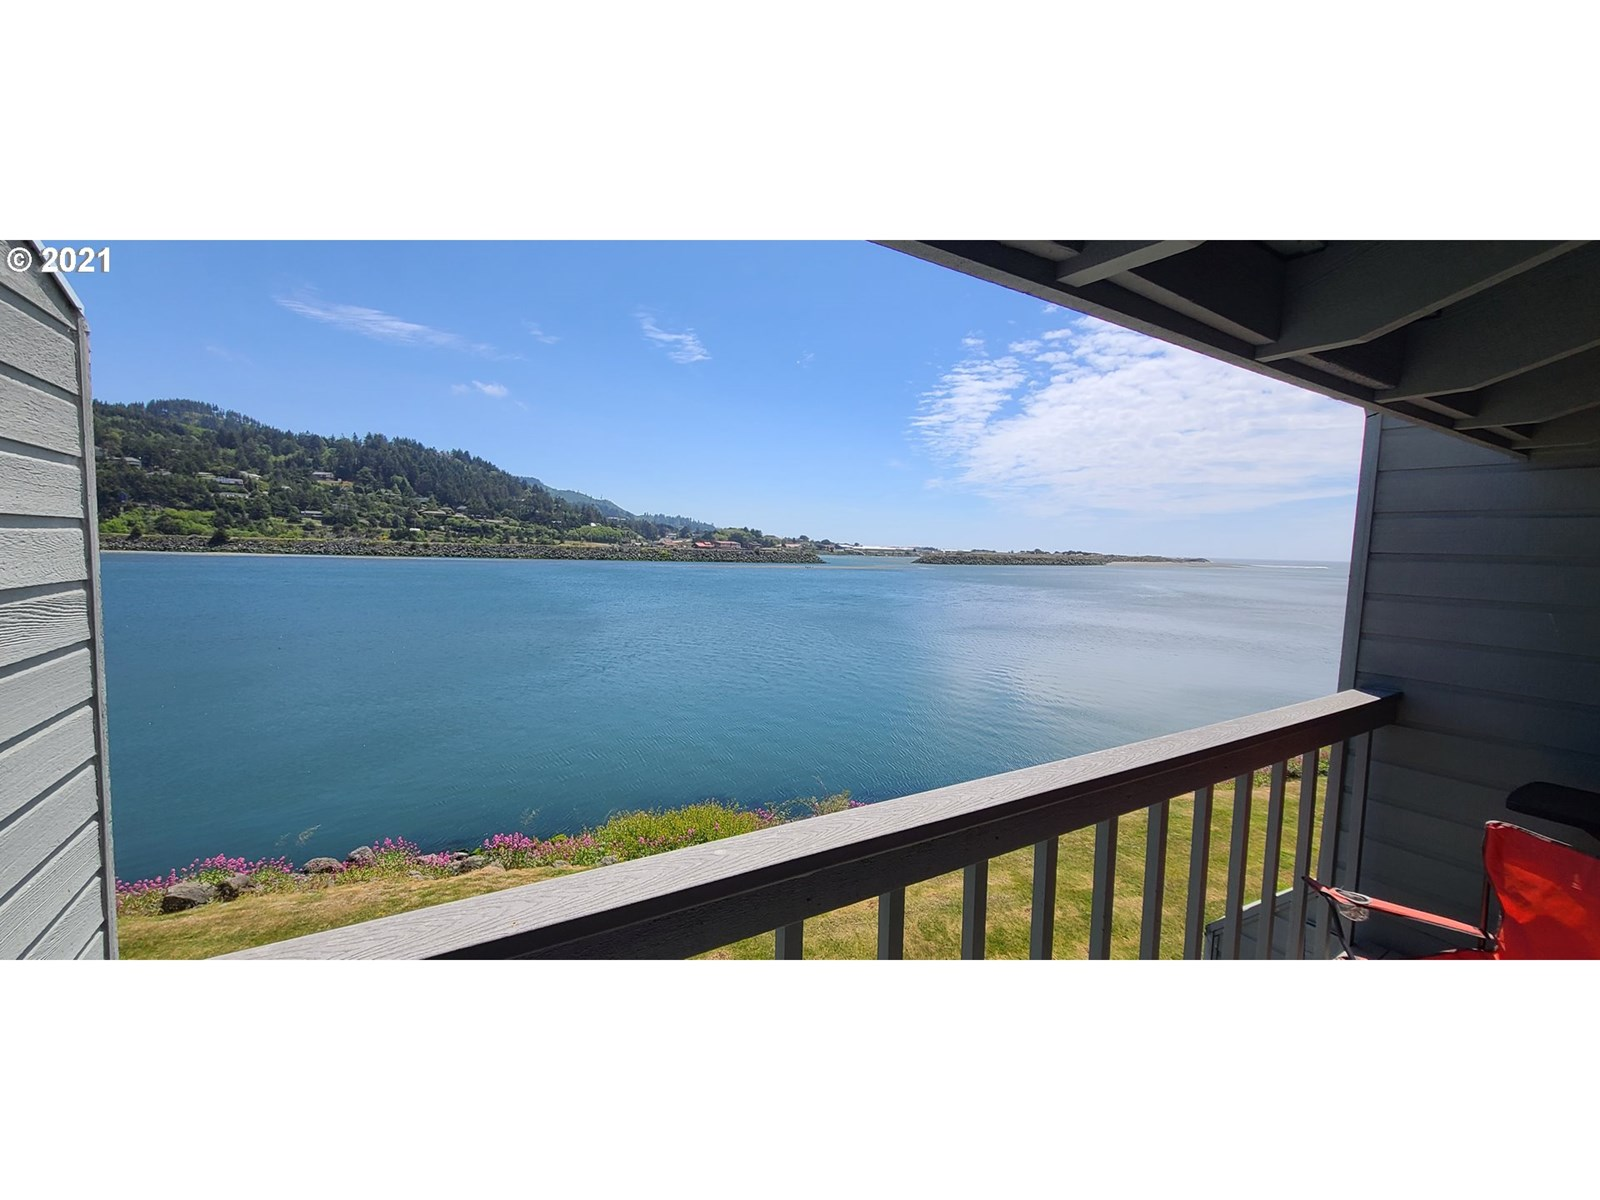 ROGUE RIVER/BAY FRONT CONDO FOR SALE ON THE OREGON COAST